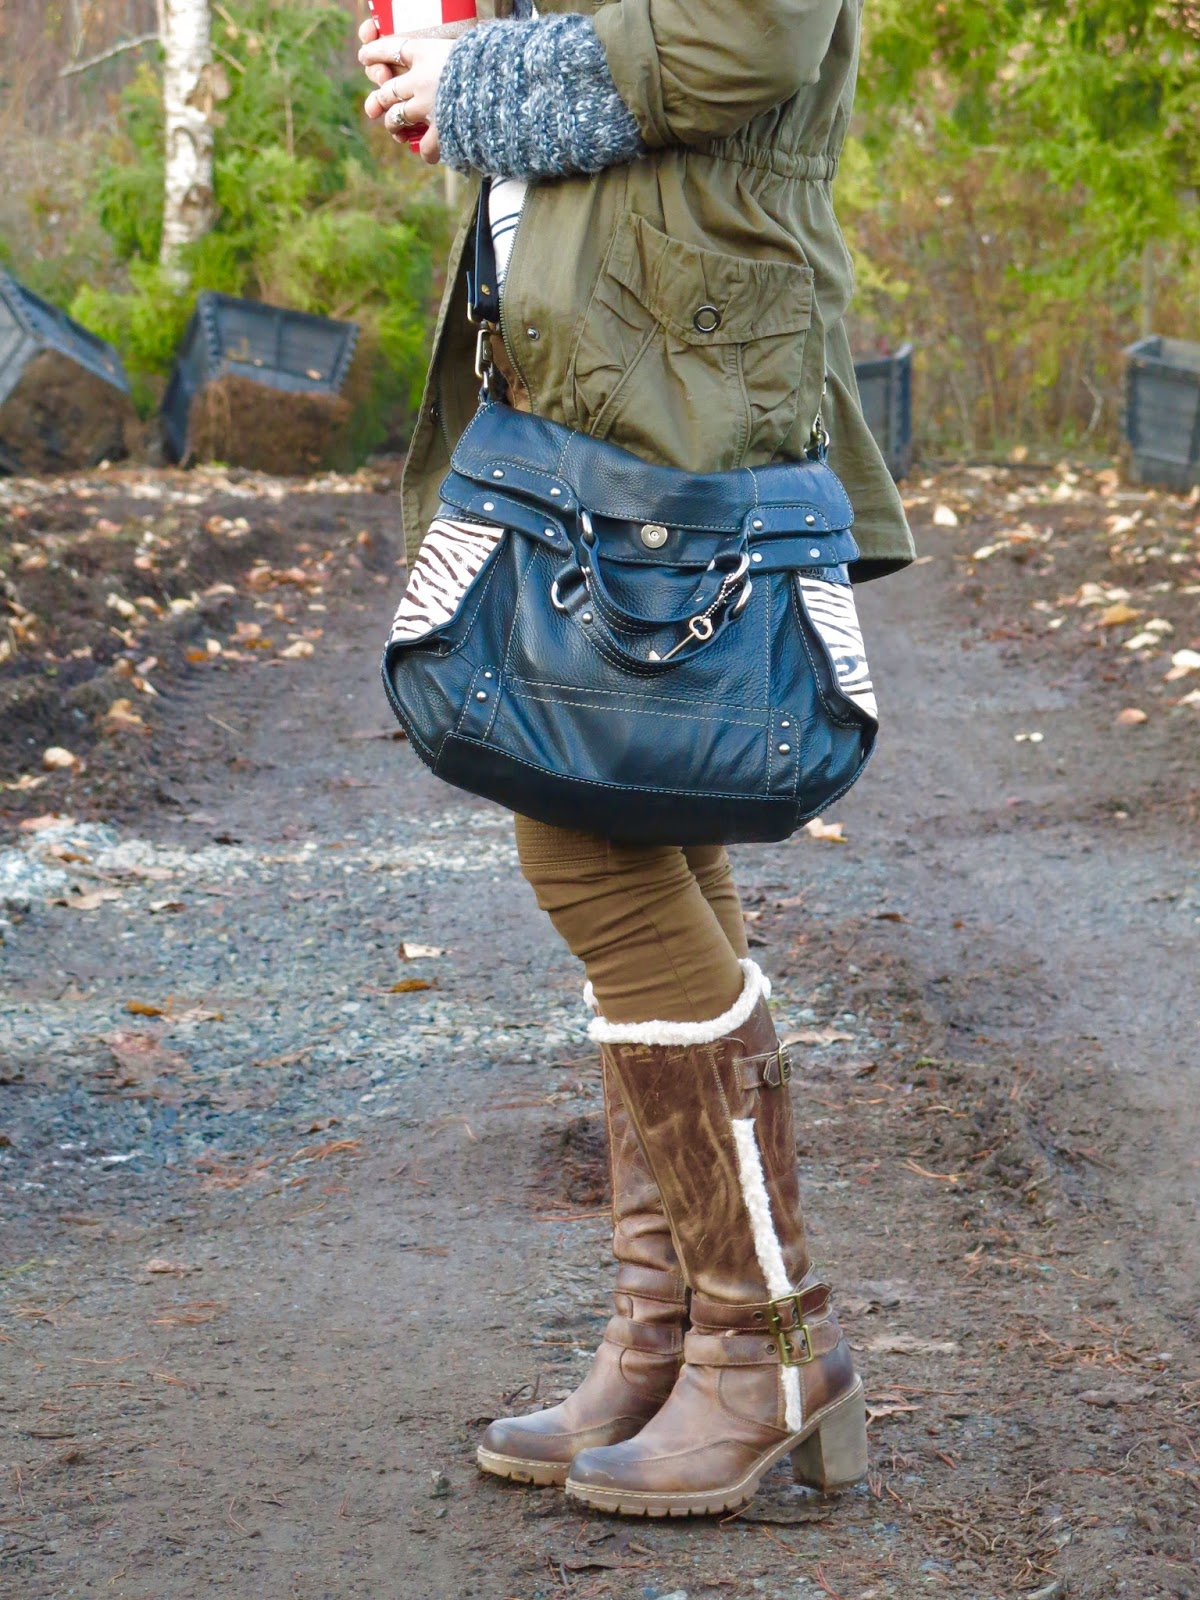 khaki skinnies, layered jackets, lug-soled boots, and Fossil bag